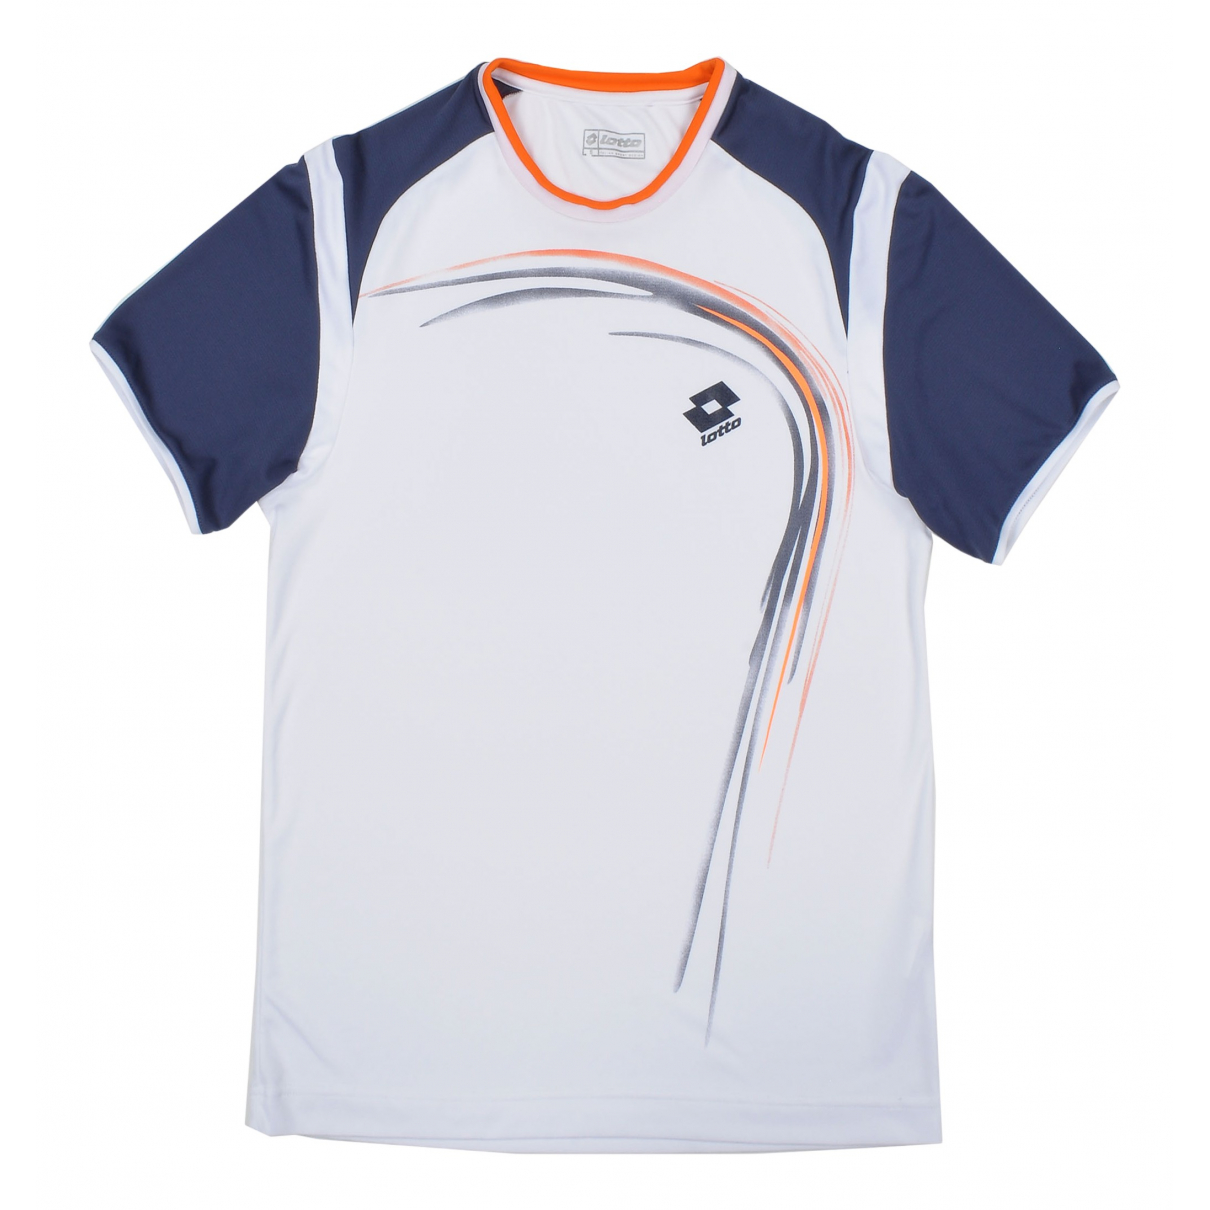 Lotto - Tee shirts   pour homme - blanc